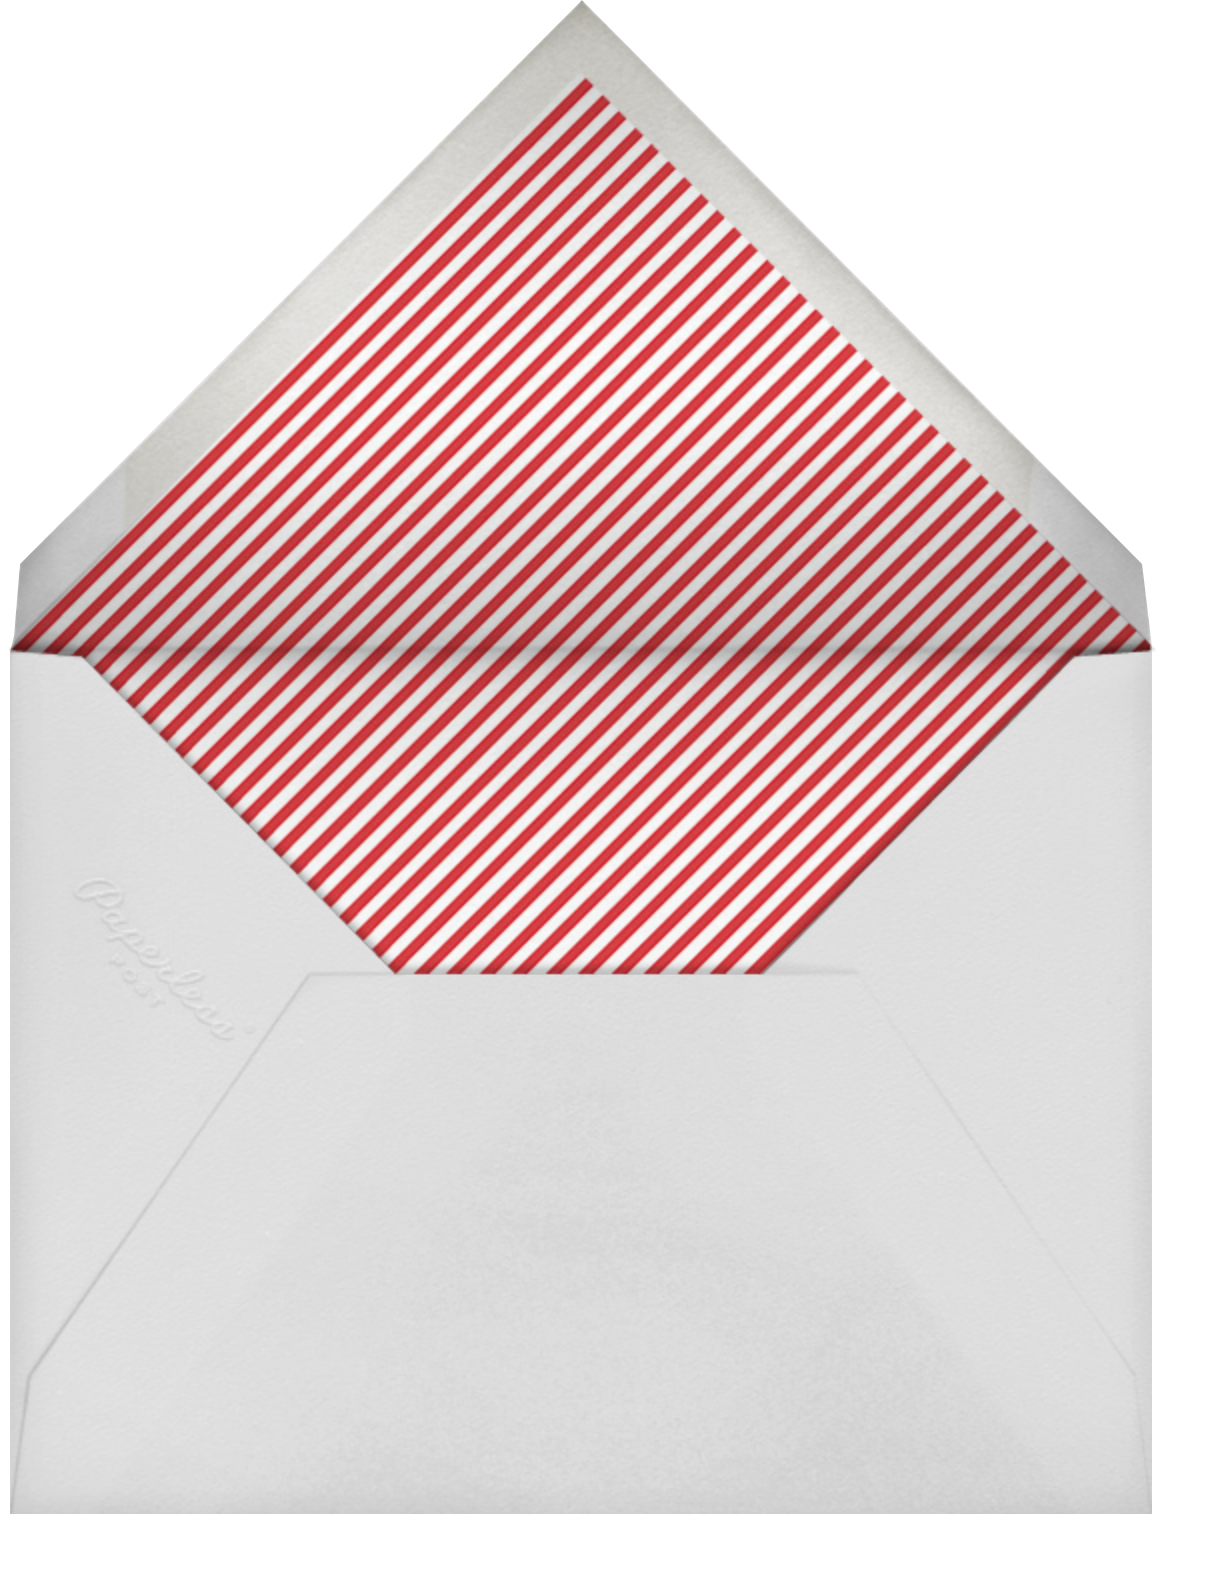 Leave Your Stamp - Cheree Berry - Holiday cards - envelope back